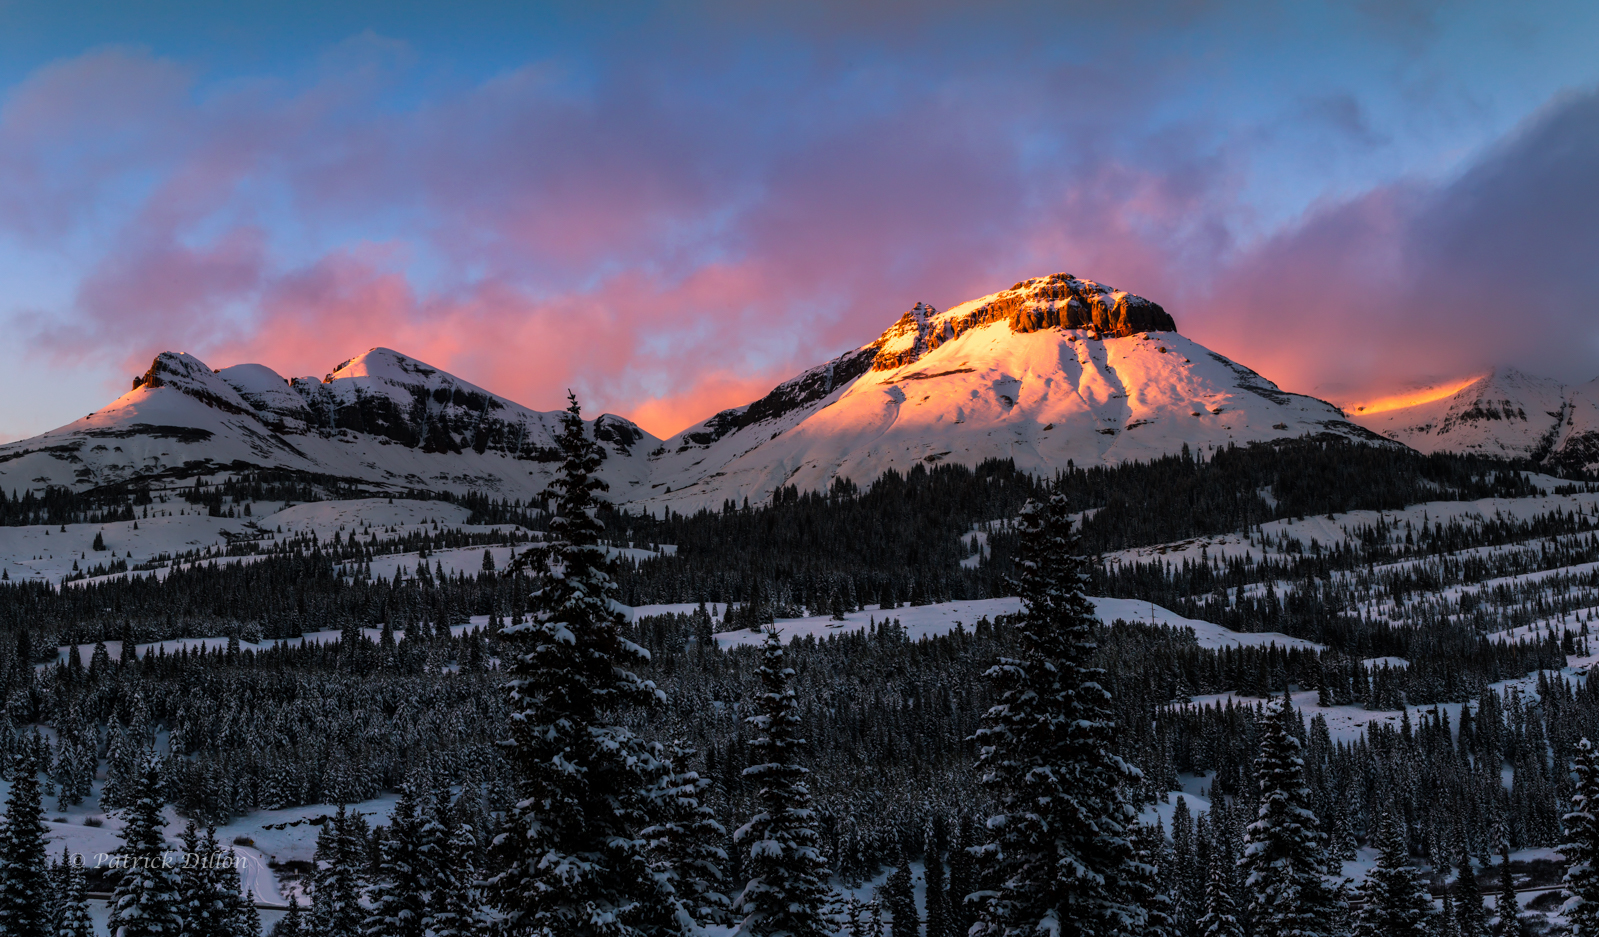 San Juan Mountains first major fall snow 2016 sunset